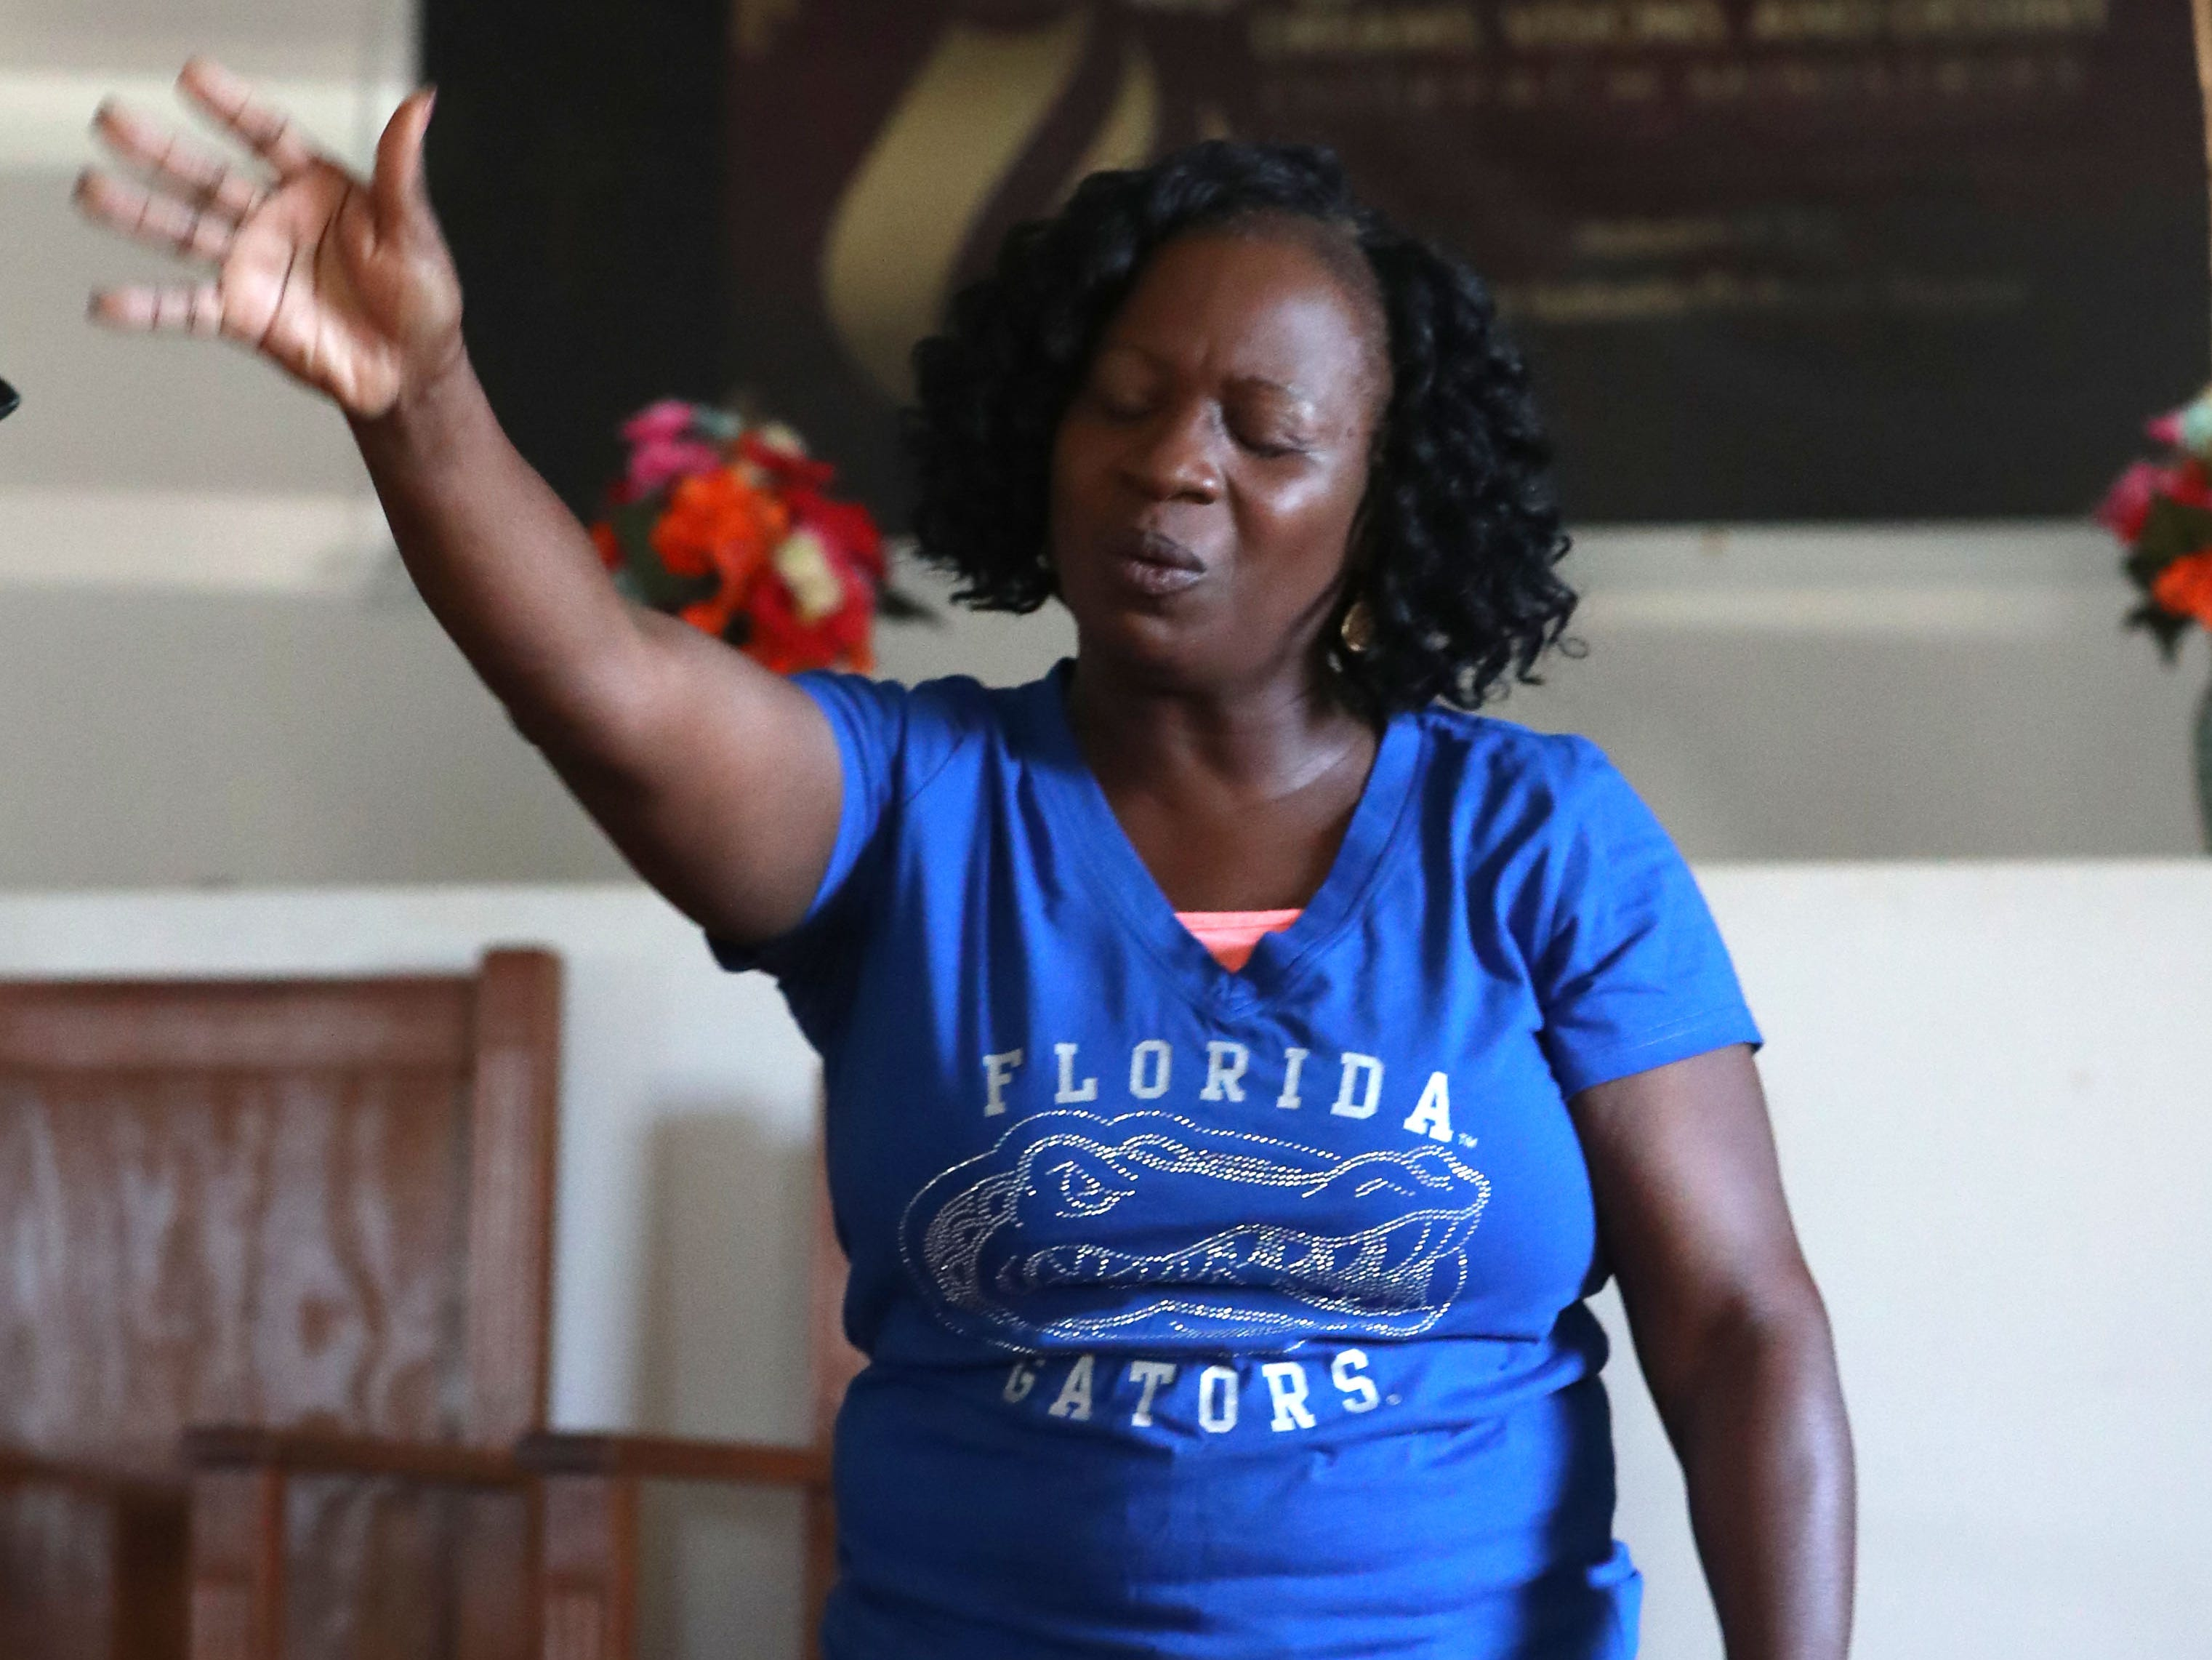 Isabella Dubose, aunt of Demashell Bass, a woman who could not receive medical attention and died during the hurricane, and pastor at the Dream, Vision, and Destiny (DVD) Ministry in Gretna, Fla., sings her praises at Sunday service on Oct. 14, 2018, after Hurricane Michael hits the Florida panhandle.